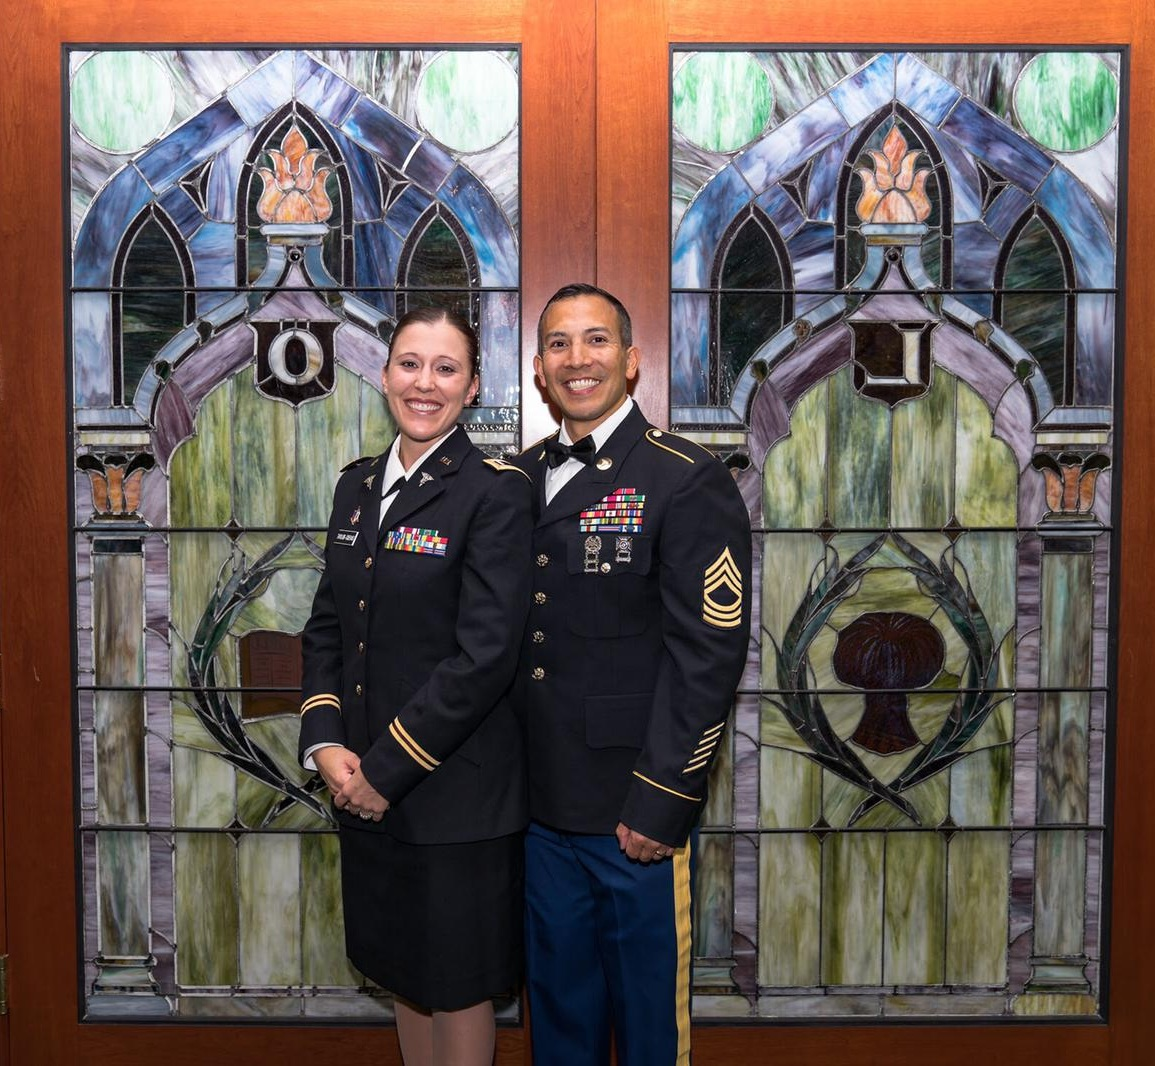 Brandi with her husband SGM Cuevas at a Dining-in for the 8th Medical Brigade at the Grand Lodge of Free and Accepted Masons of the State of New York.